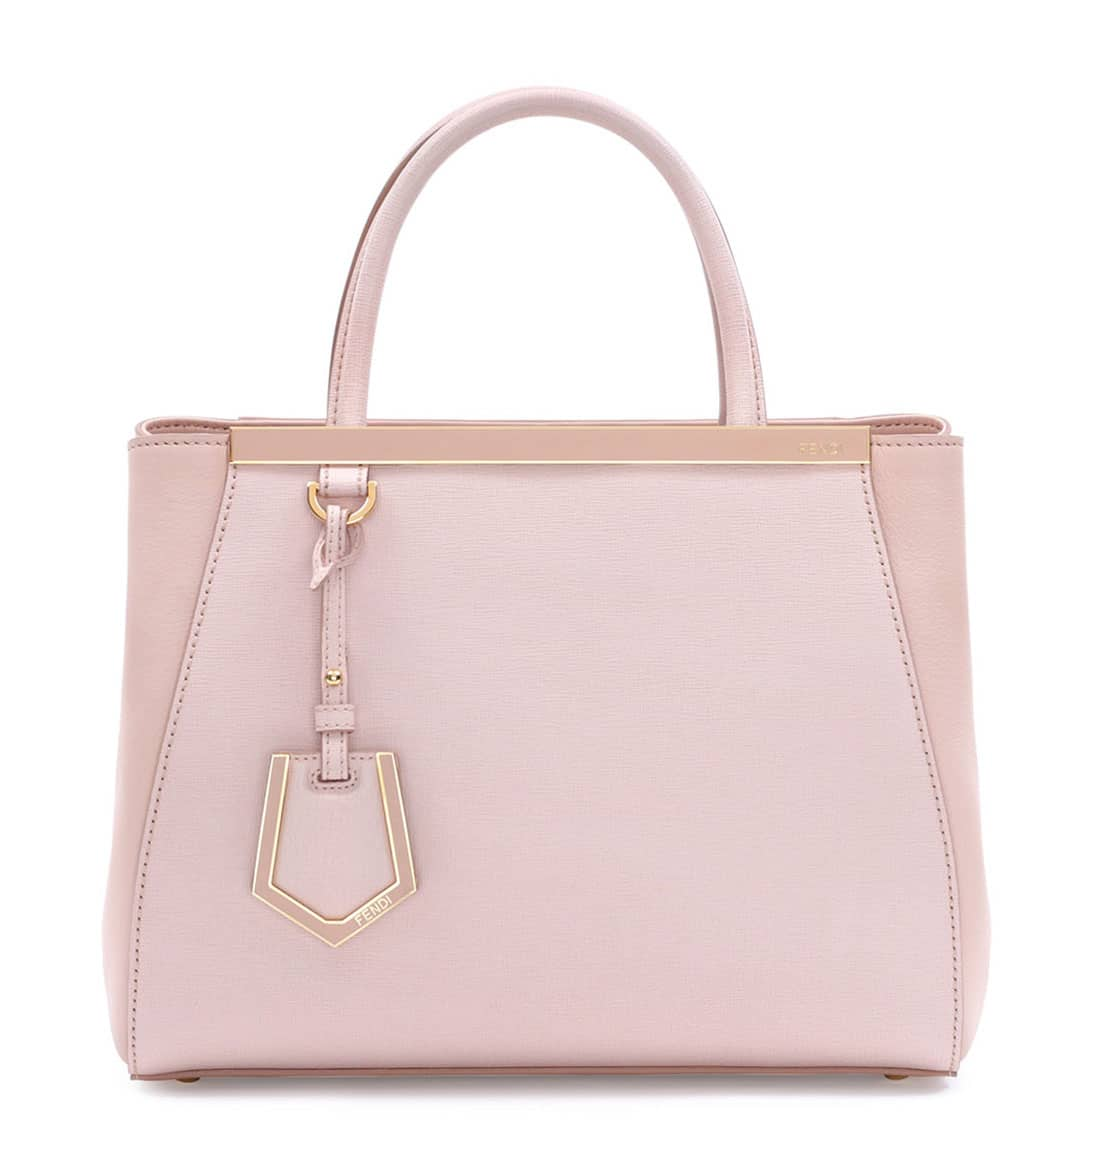 Fendi spring summer 2015 runway bag collection spotted fashion - Fendi Light Pink 2jours Mini Bag